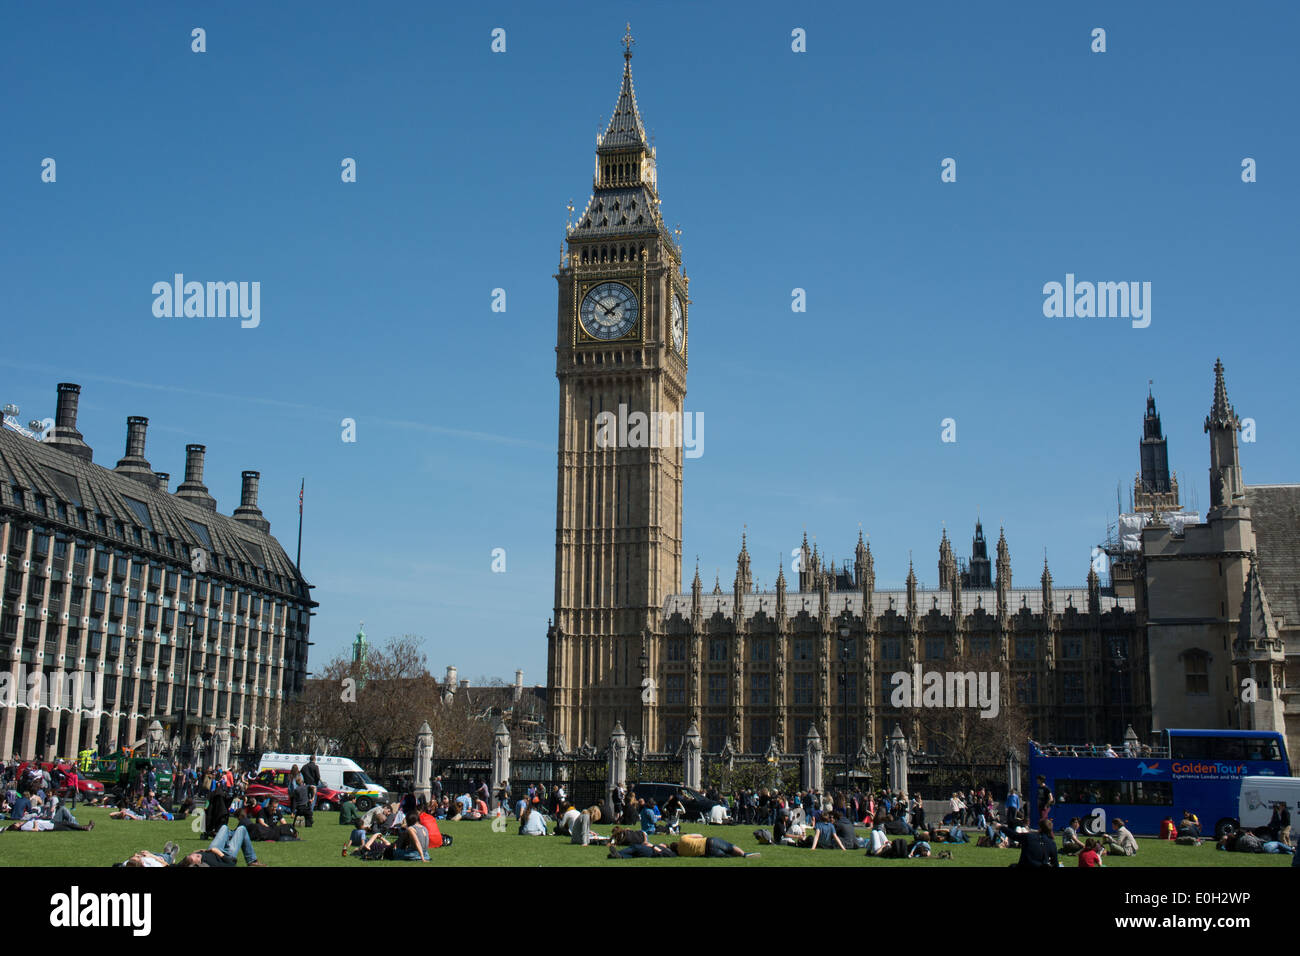 Tourist enjoy a warm spring time day in London on the grass in the center of Parliament Square - Stock Image